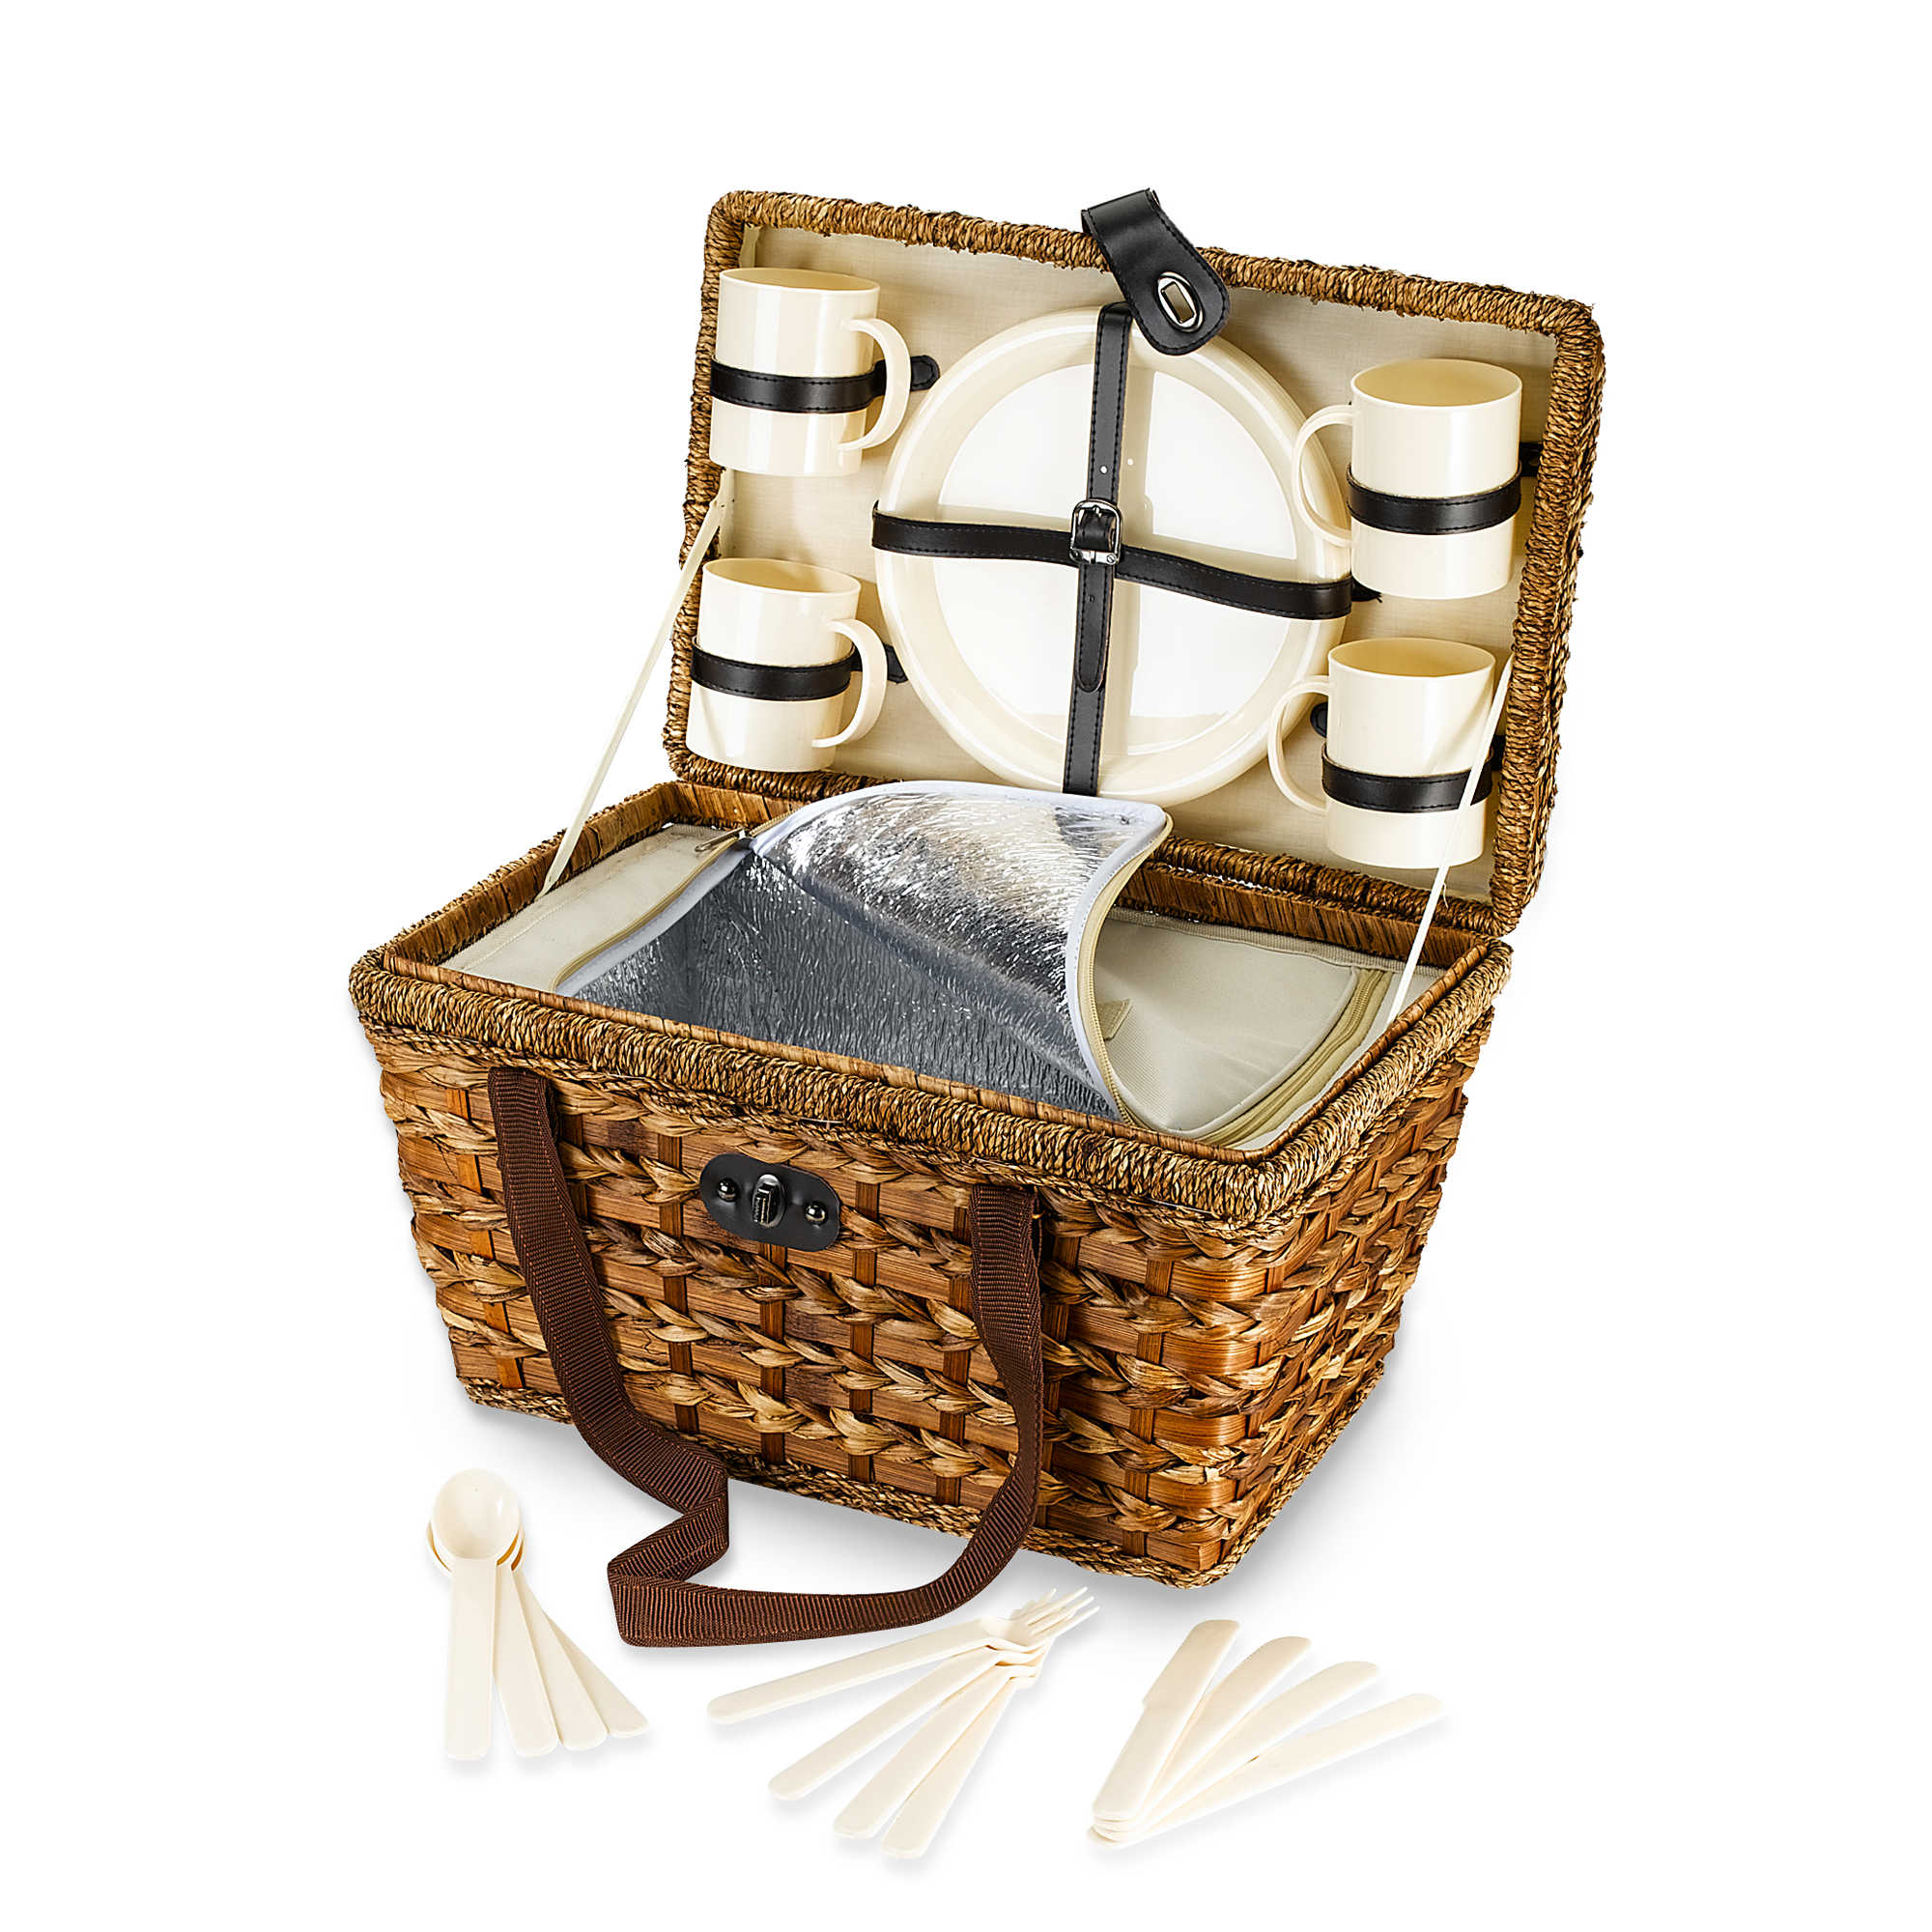 Bamboo 21 Piece Insulated Picnic Basket. Bamboo 21 Piece Insulated Picnic Basket   Bed Bath   Beyond